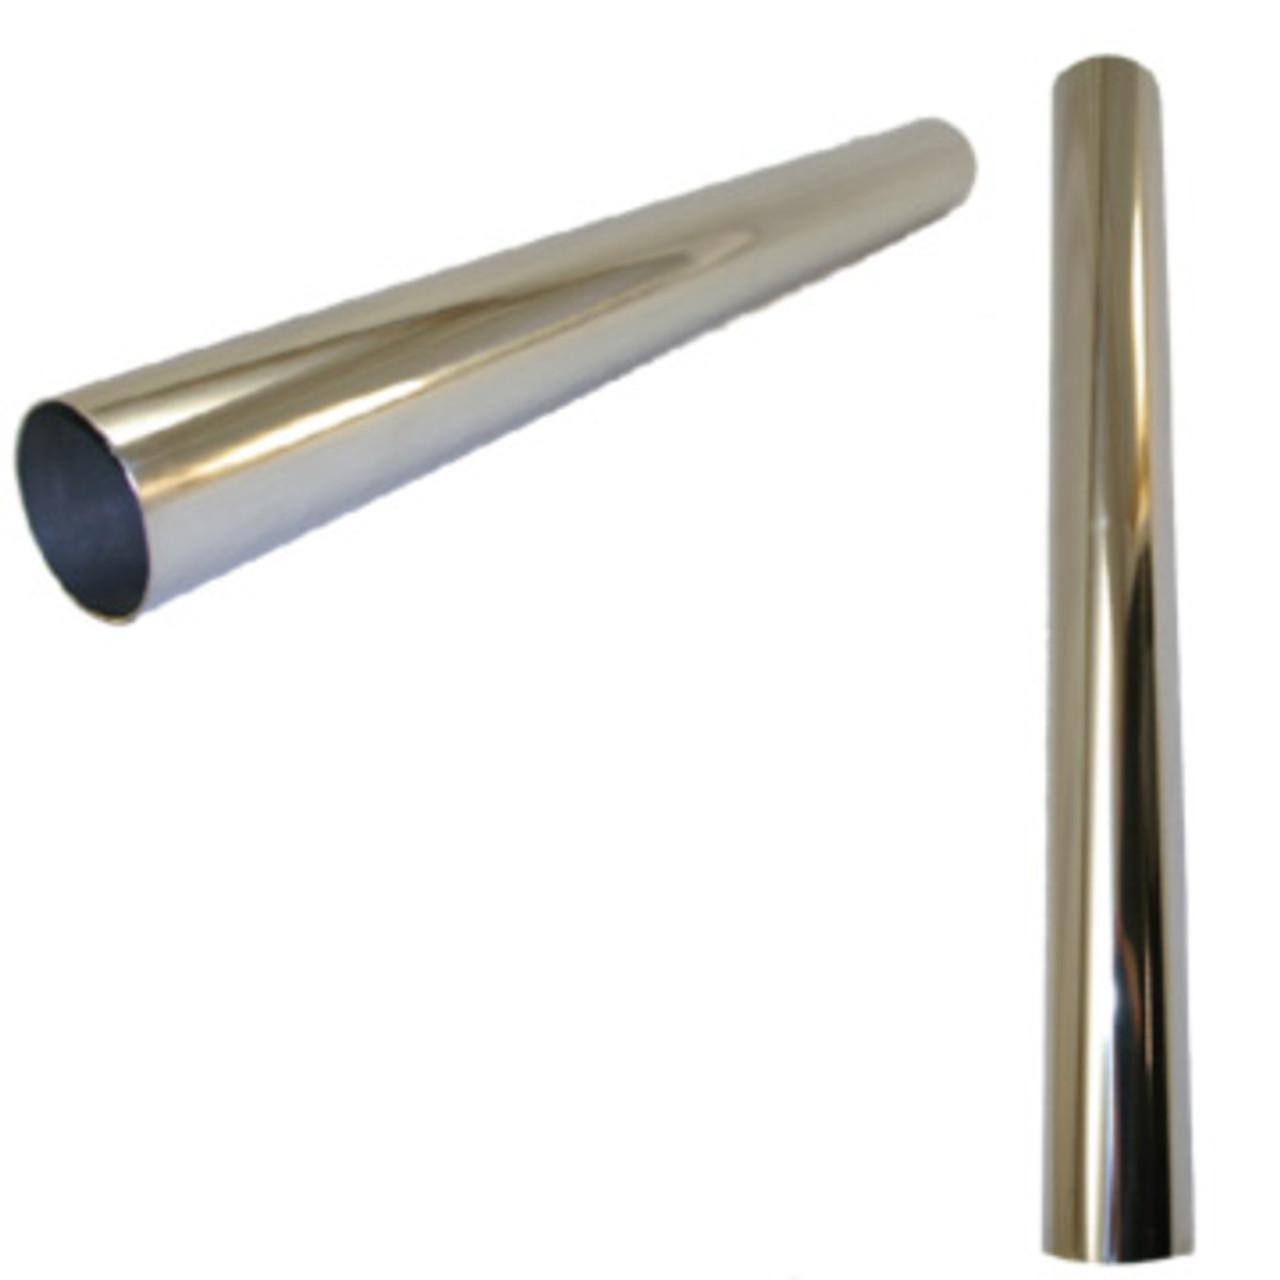 2' Straight Stainless Steel Pipe